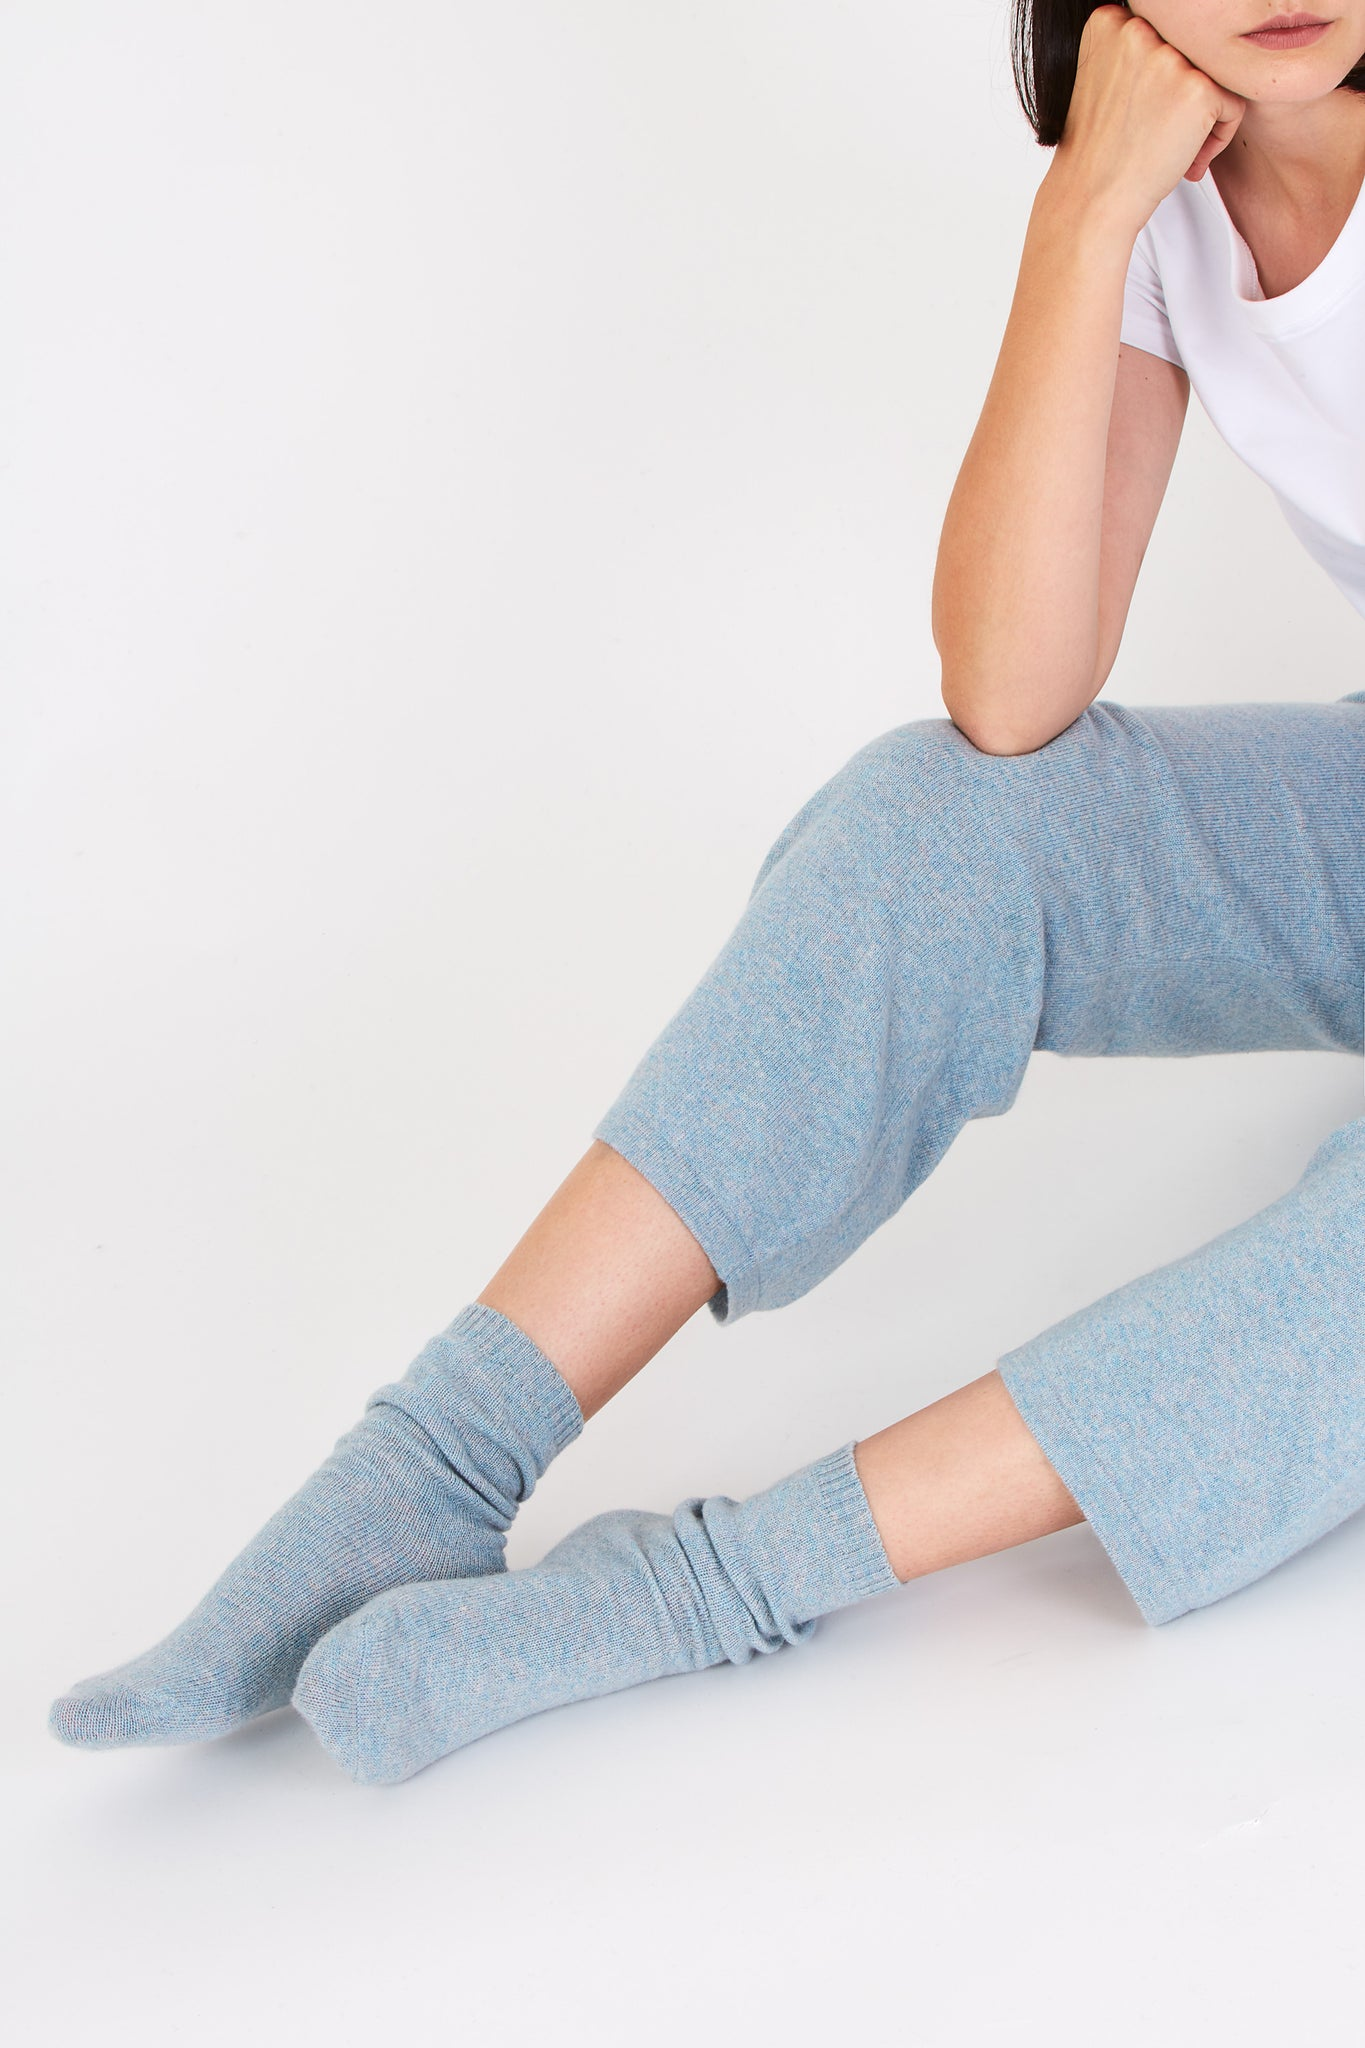 Ulla lounge socks in light blue